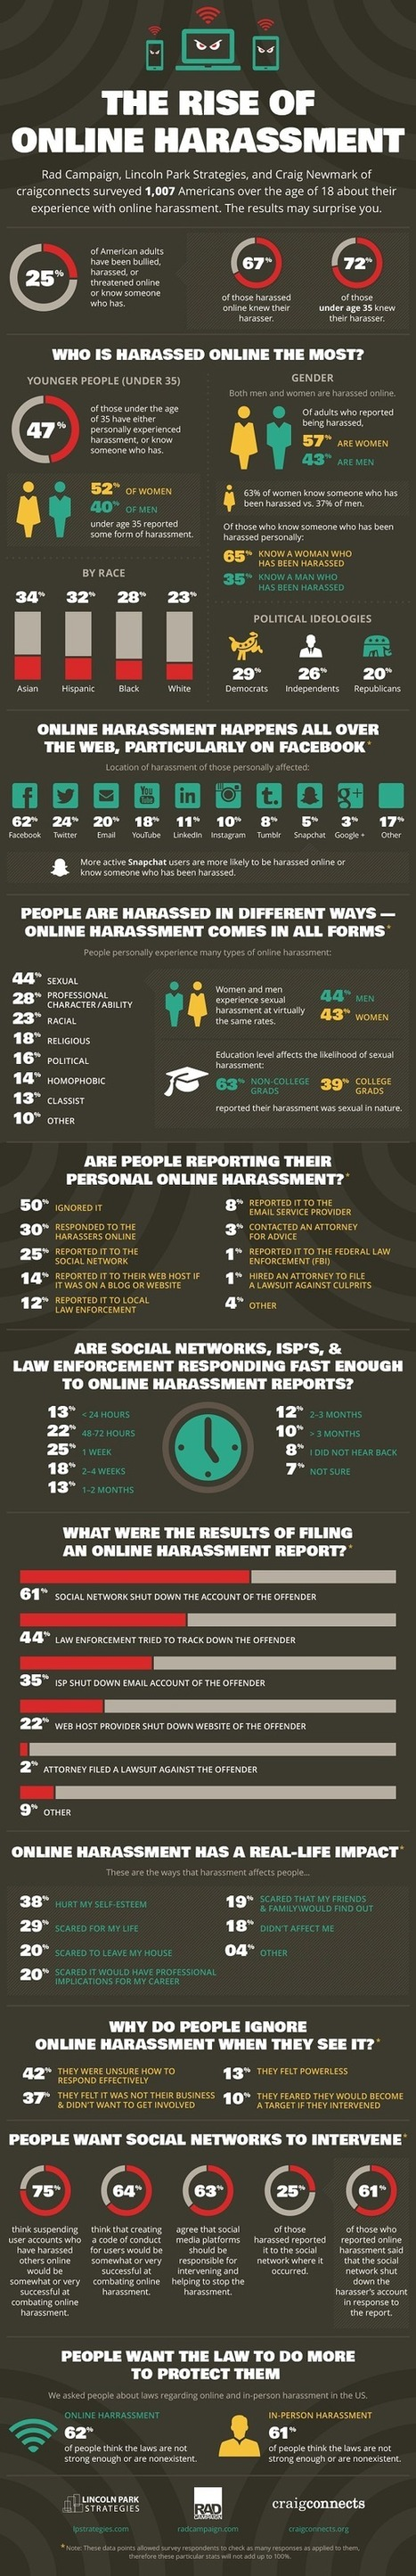 Survey Finds Harassment Pervasive on Social Media [Infographic] | SocialAction2014 | Scoop.it